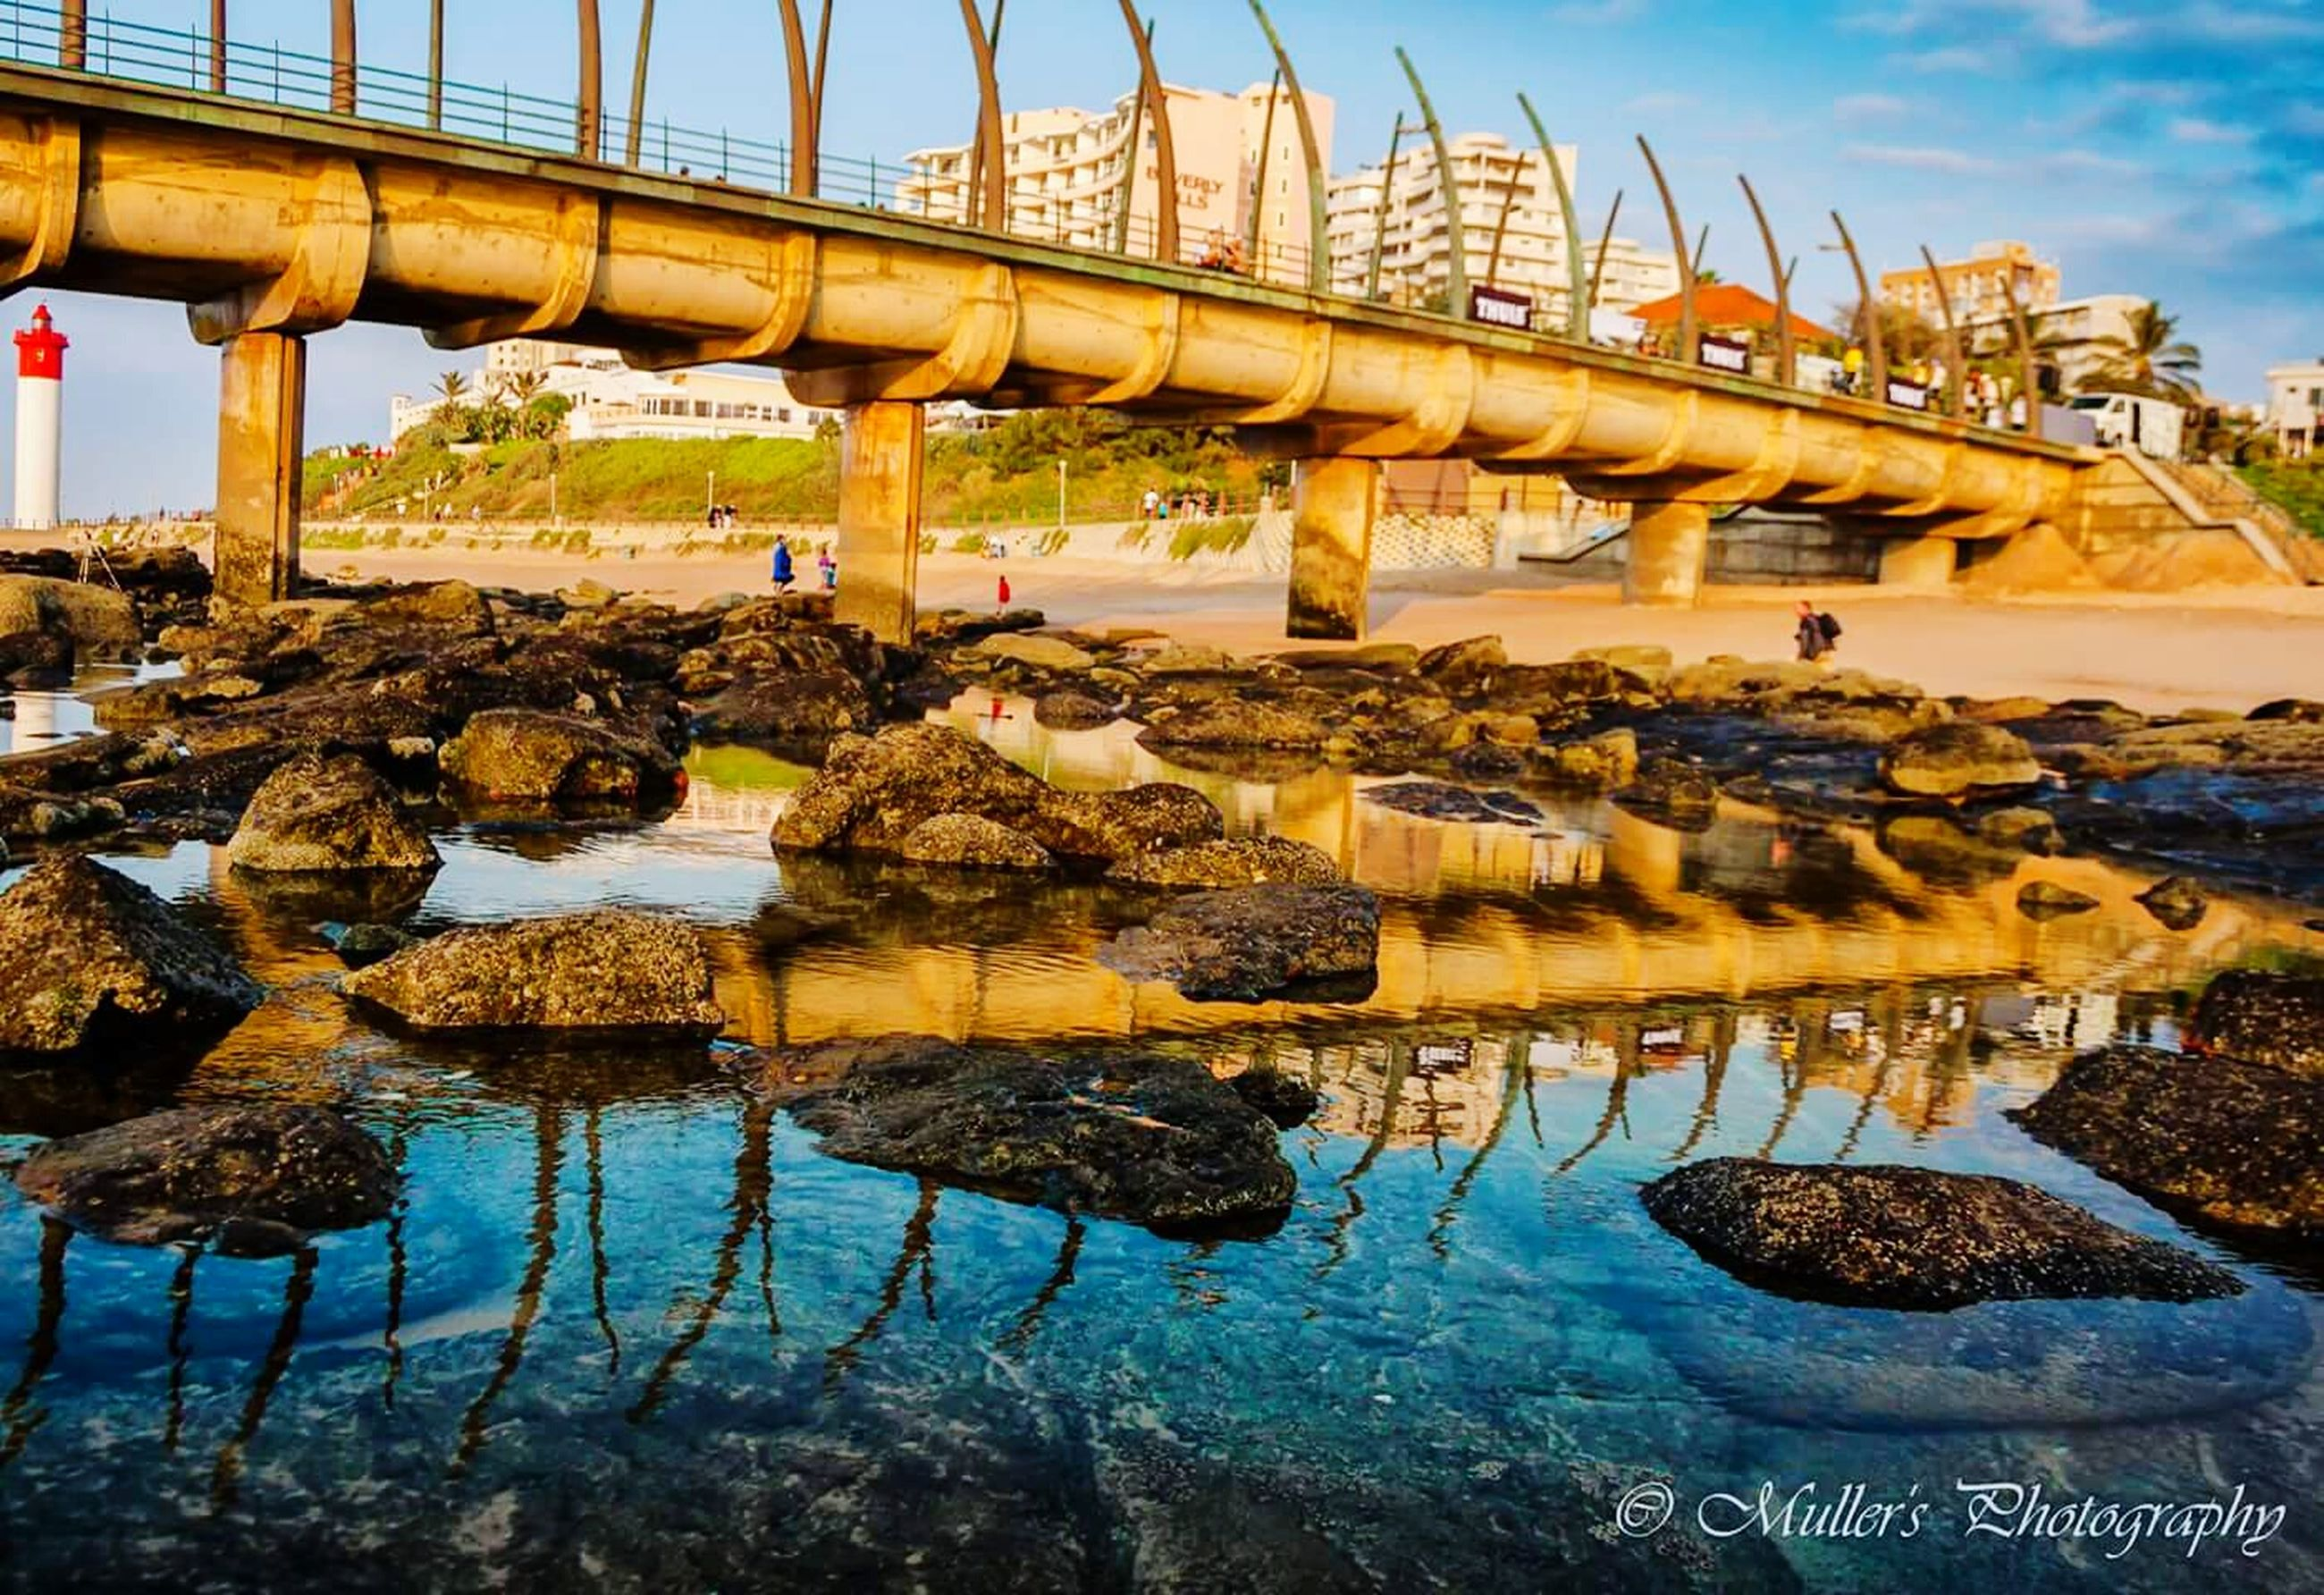 water, sea, built structure, sky, reflection, beach, architecture, nature, river, waterfront, tranquility, rock - object, connection, bridge - man made structure, day, outdoors, scenics, tranquil scene, no people, shore